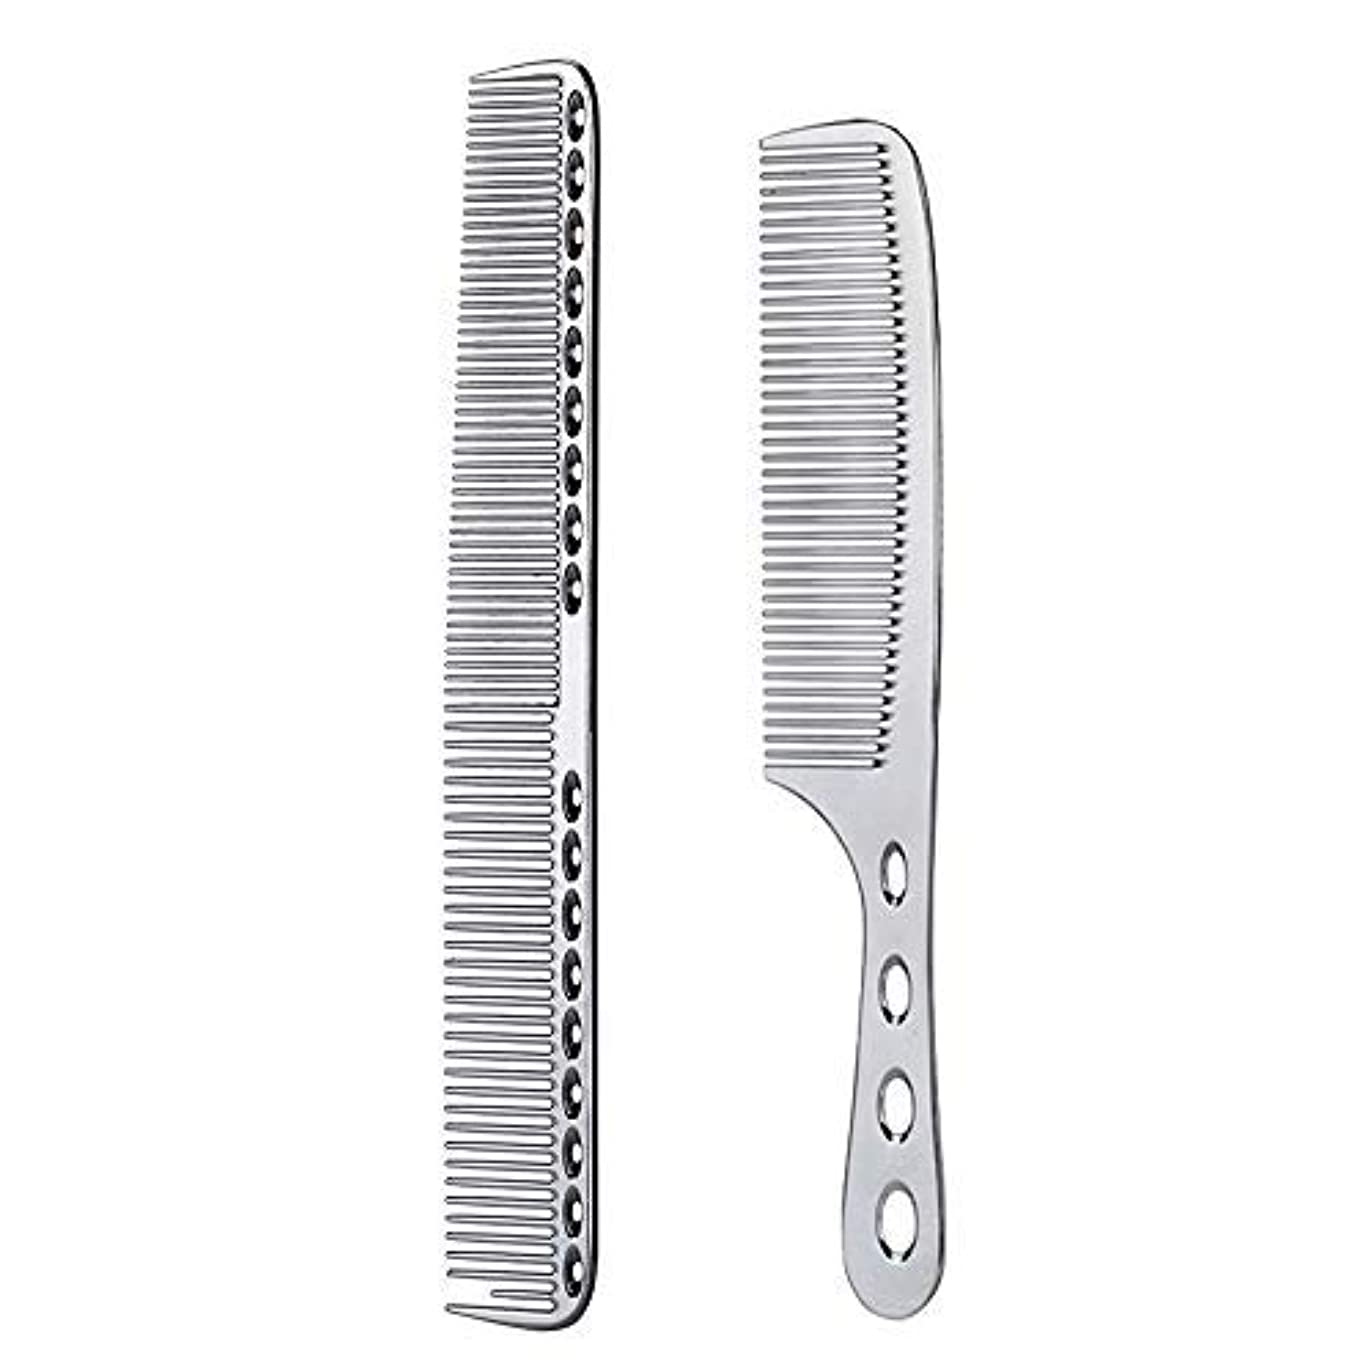 干ばつメールセンチメンタル2 pcs Stainless Steel Hair Combs Anti Static Styling Comb Hairdressing Barbers Combs (Silver) [並行輸入品]